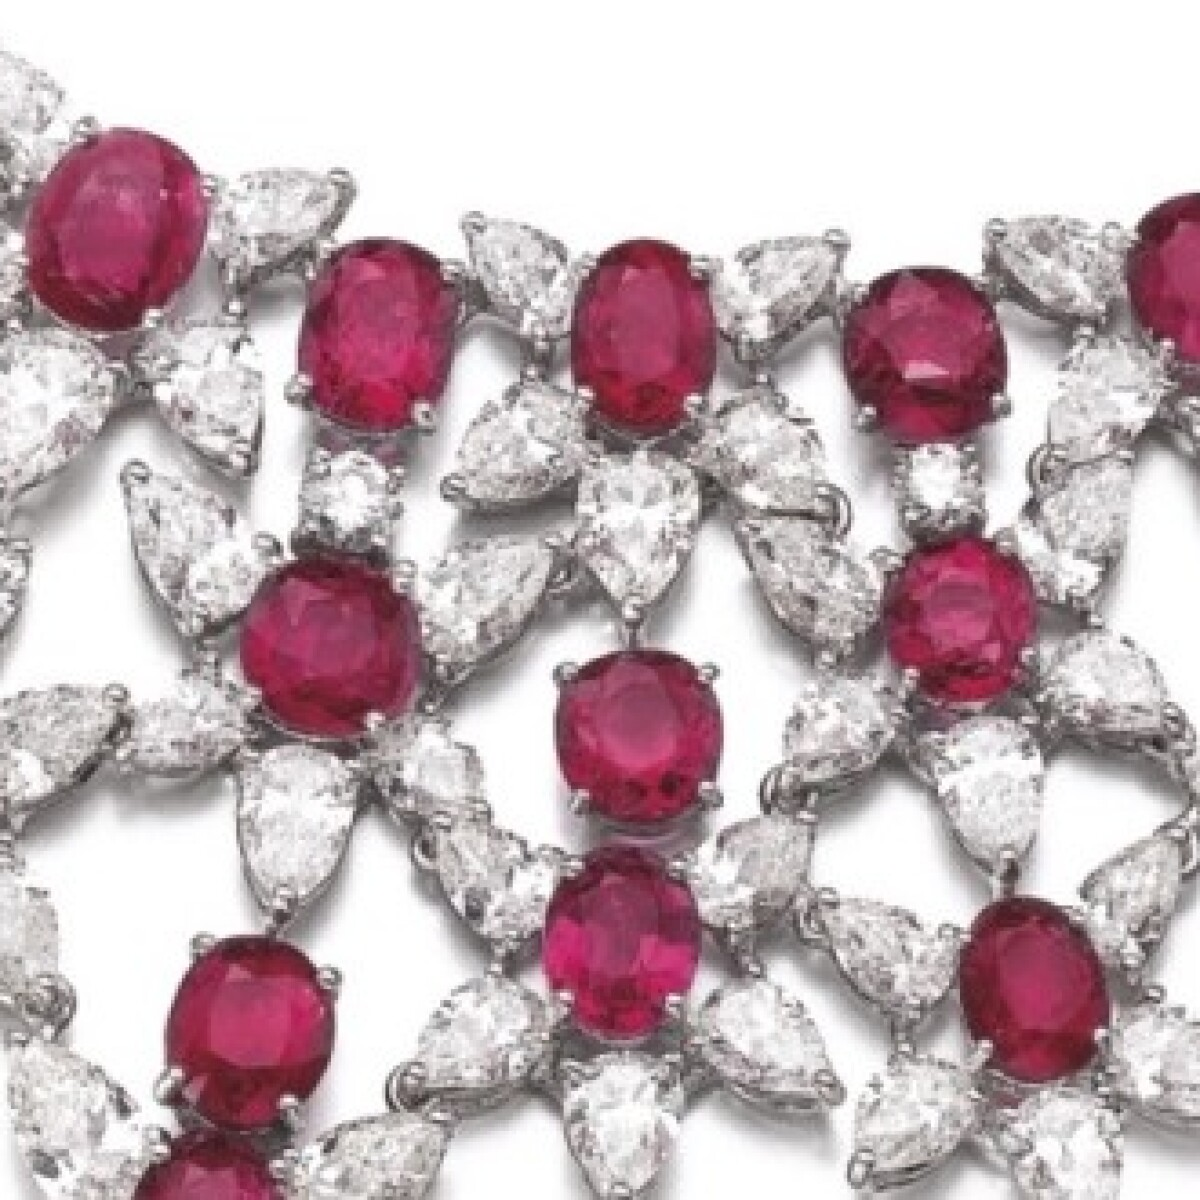 f0614bde31b17 Sell Your Harry Winston Jewelry with Sotheby's | Sotheby's